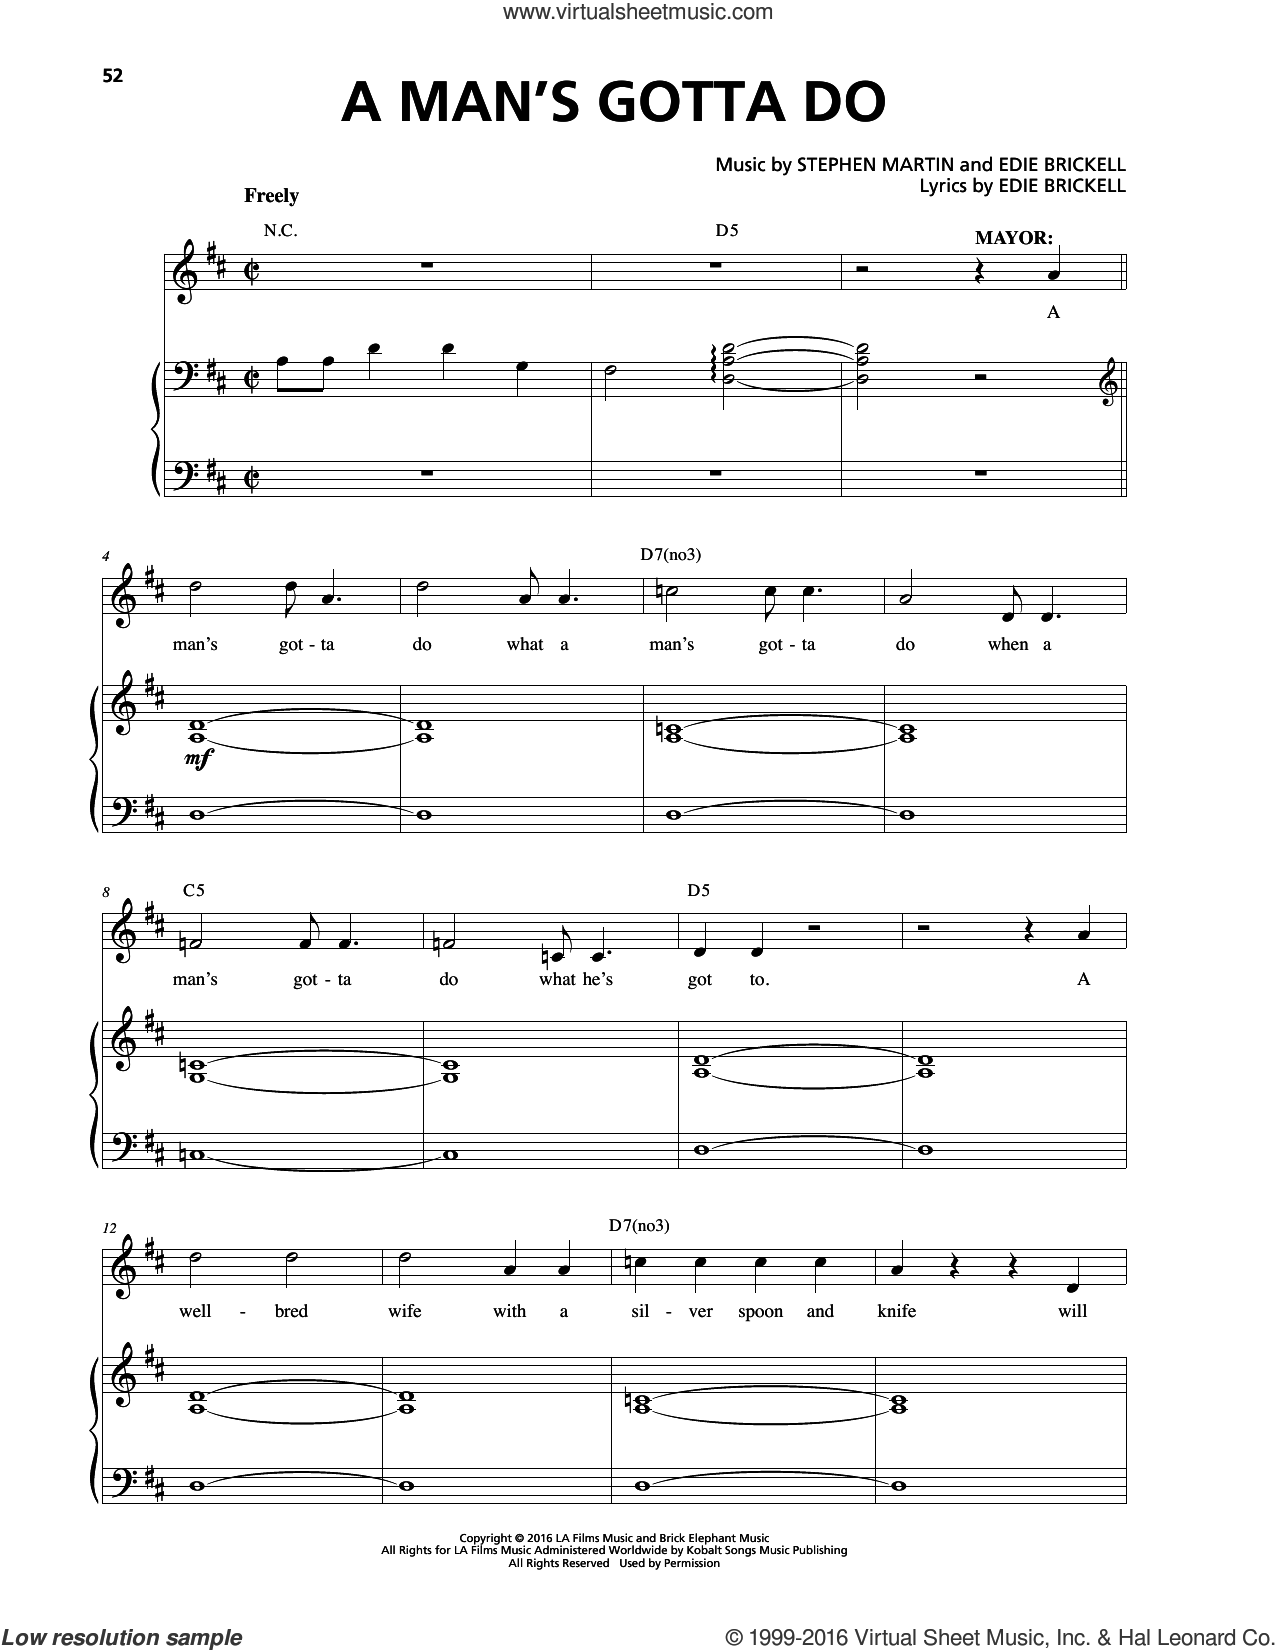 A Man's Gotta Do sheet music for voice and piano by Edie Brickell, intermediate. Score Image Preview.